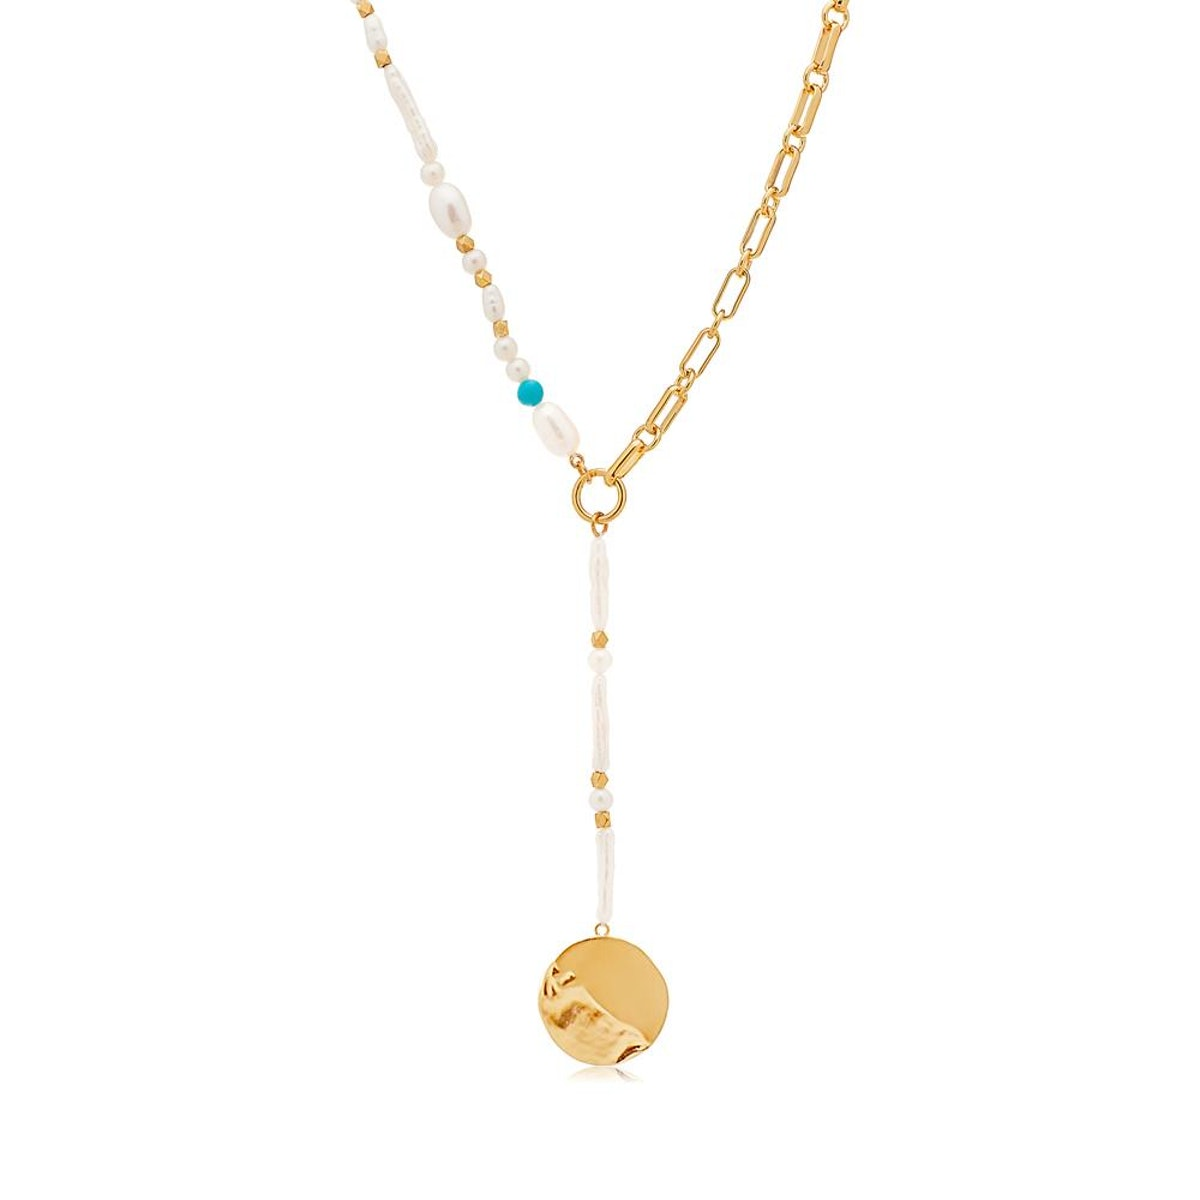 Inthefrow Tahiti Lariat Necklace from Edge of Ember, released in collaboration with influencer Victo...